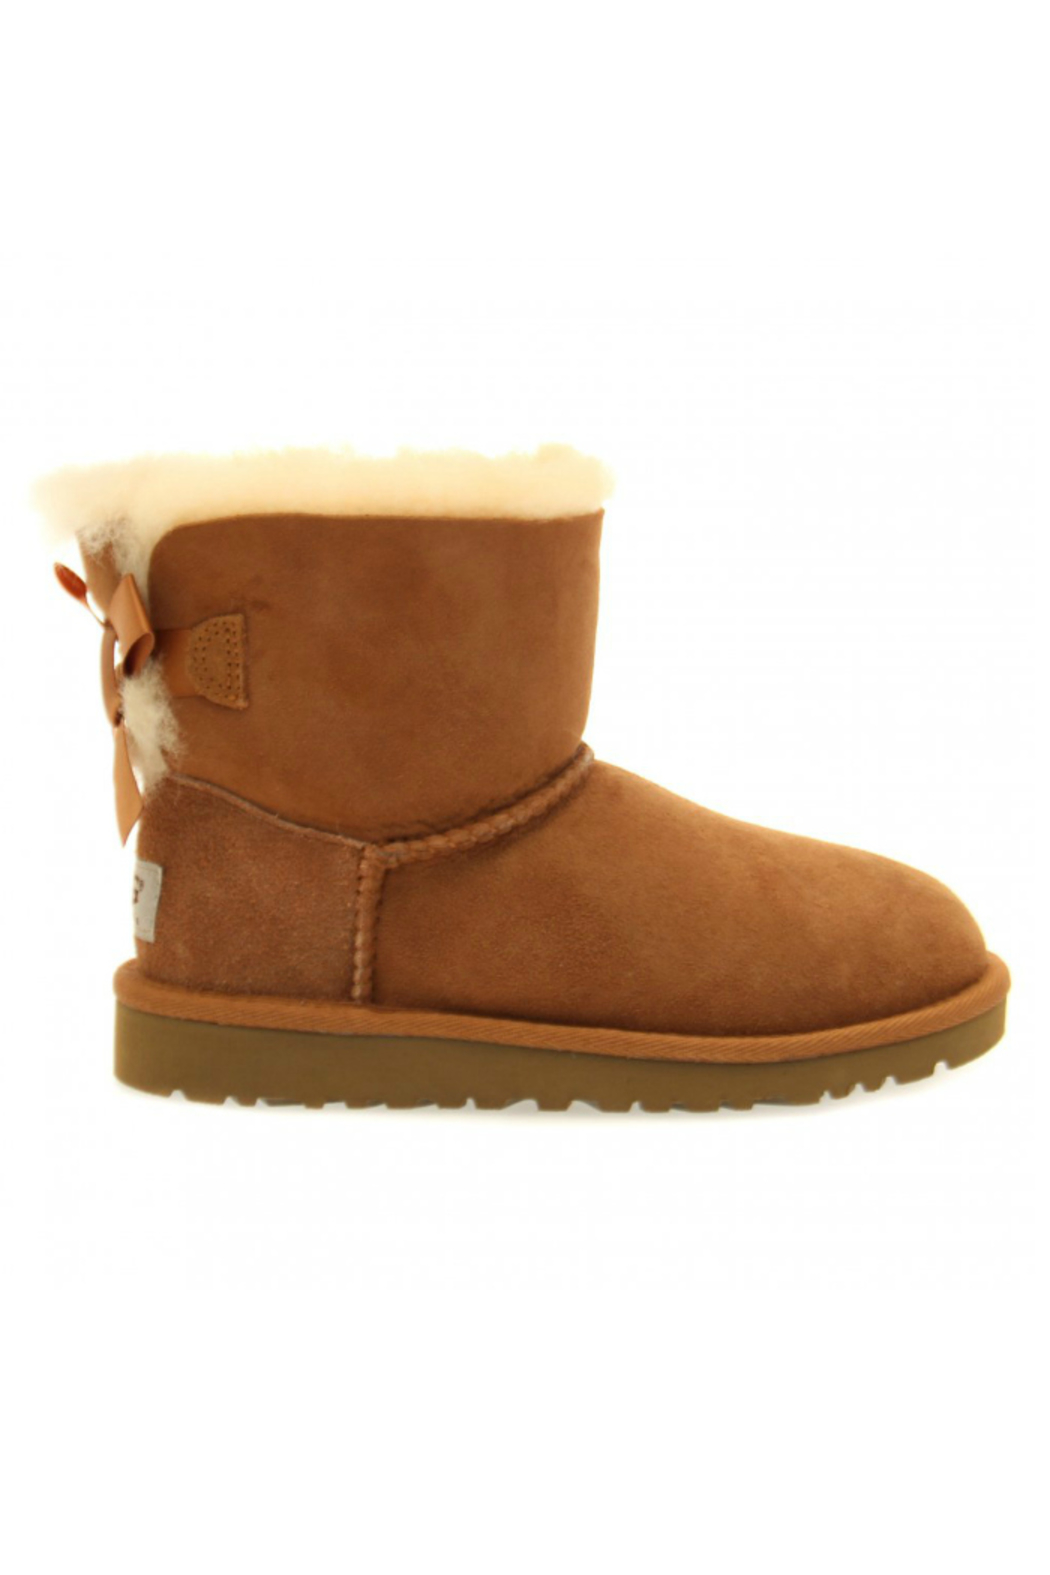 Ugg UGG KIDS MINI BAILEY BOW II - Main Image